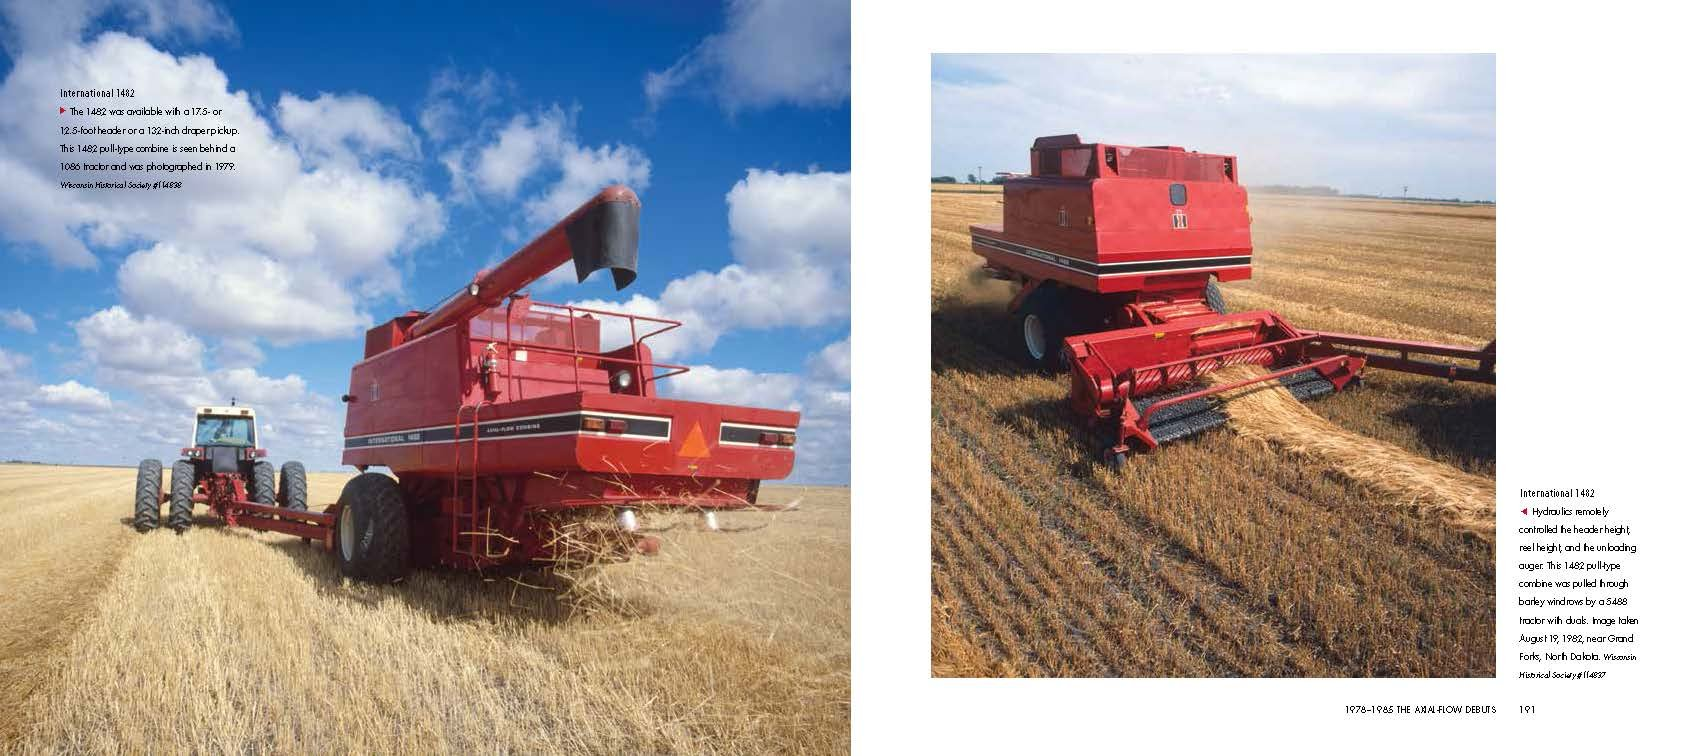 Red Combines 1915-2015: The Authoritative Guide to International Harvester and Case IH Combines and Harvesting Equipment by Octane Press LLC (Image #7)